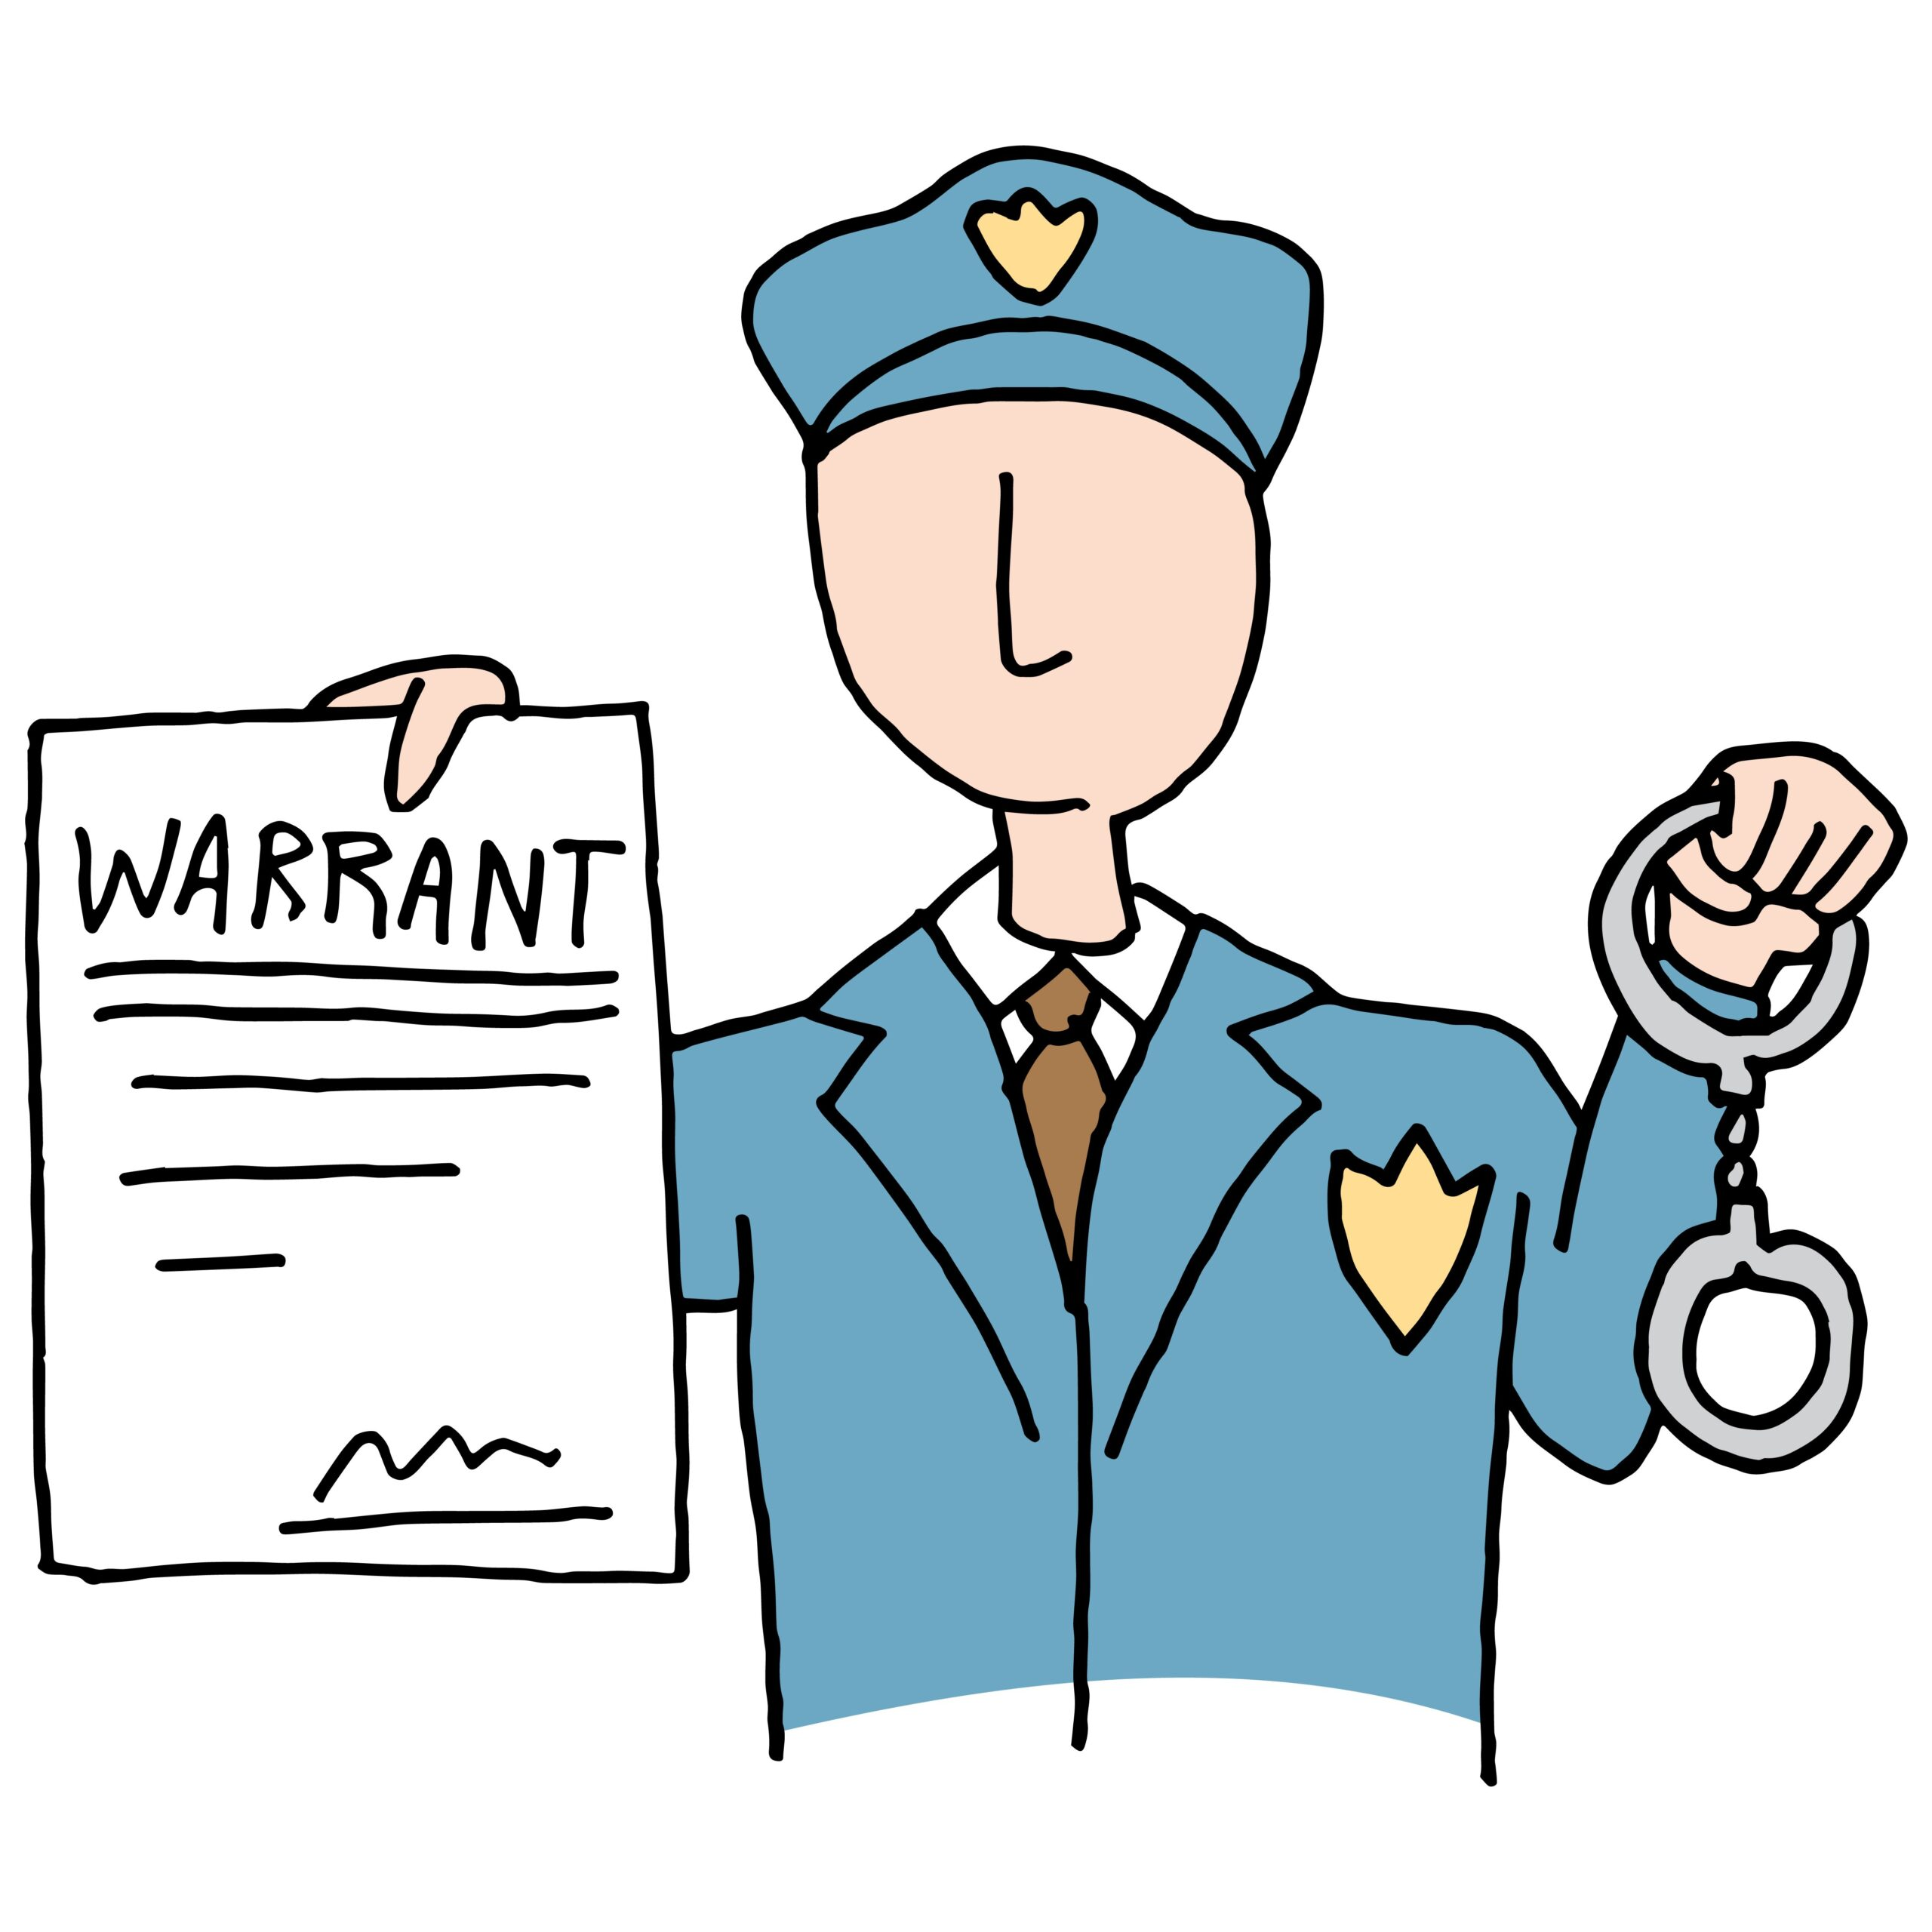 What To Do If There Is A Warrant For Your Arrest